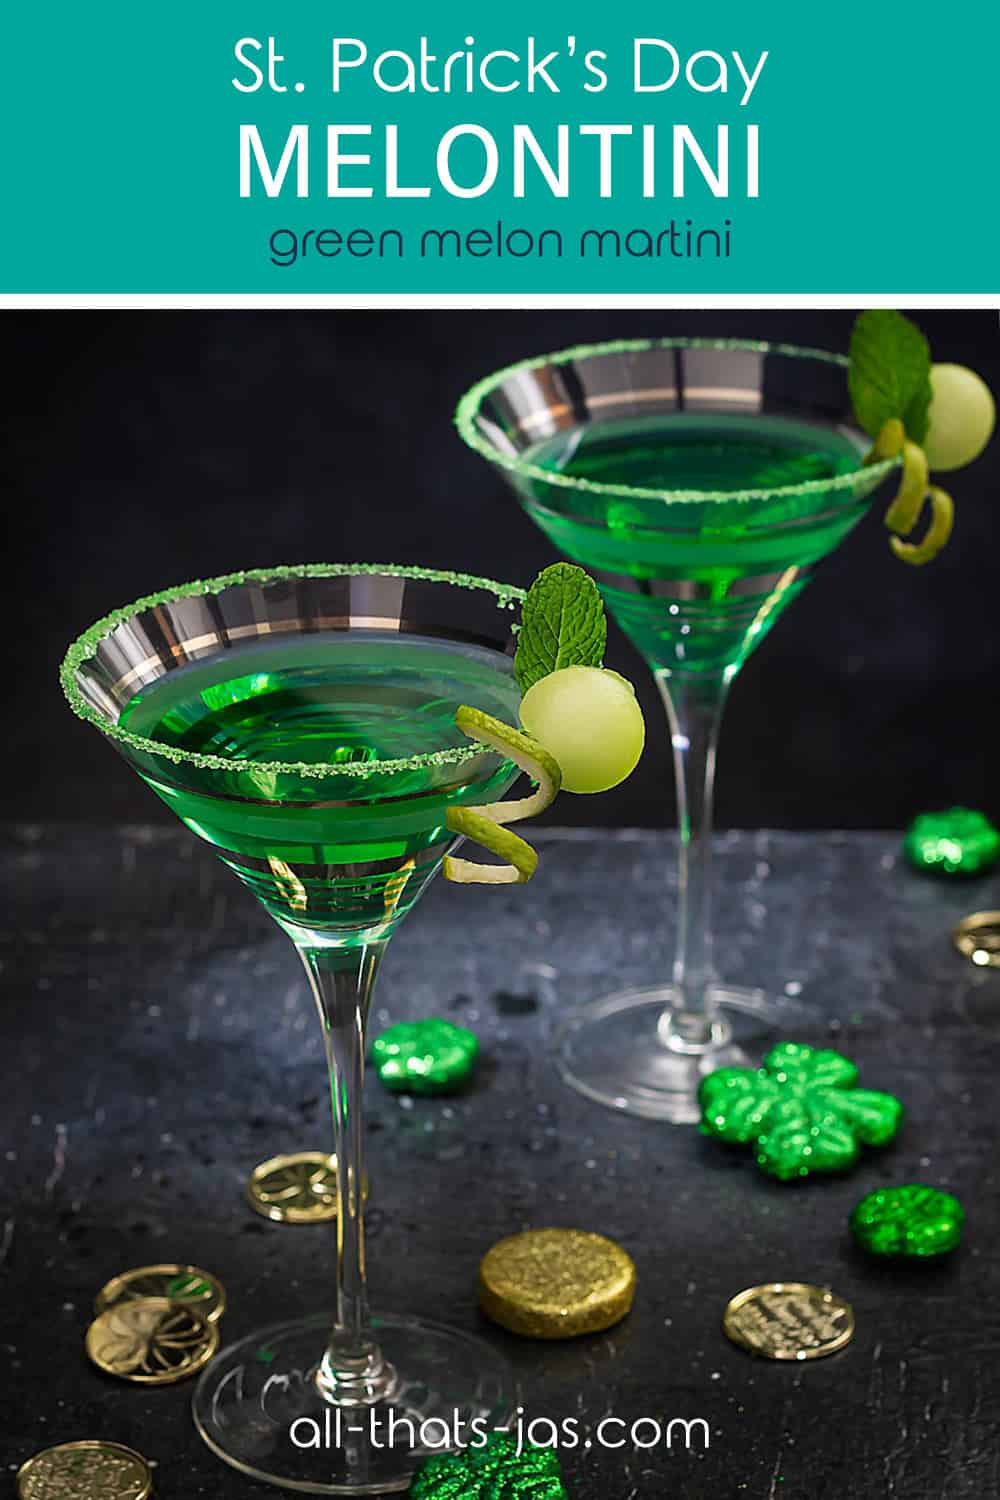 Two midori cocktails on a black background with shamrock decorations and text overlay.